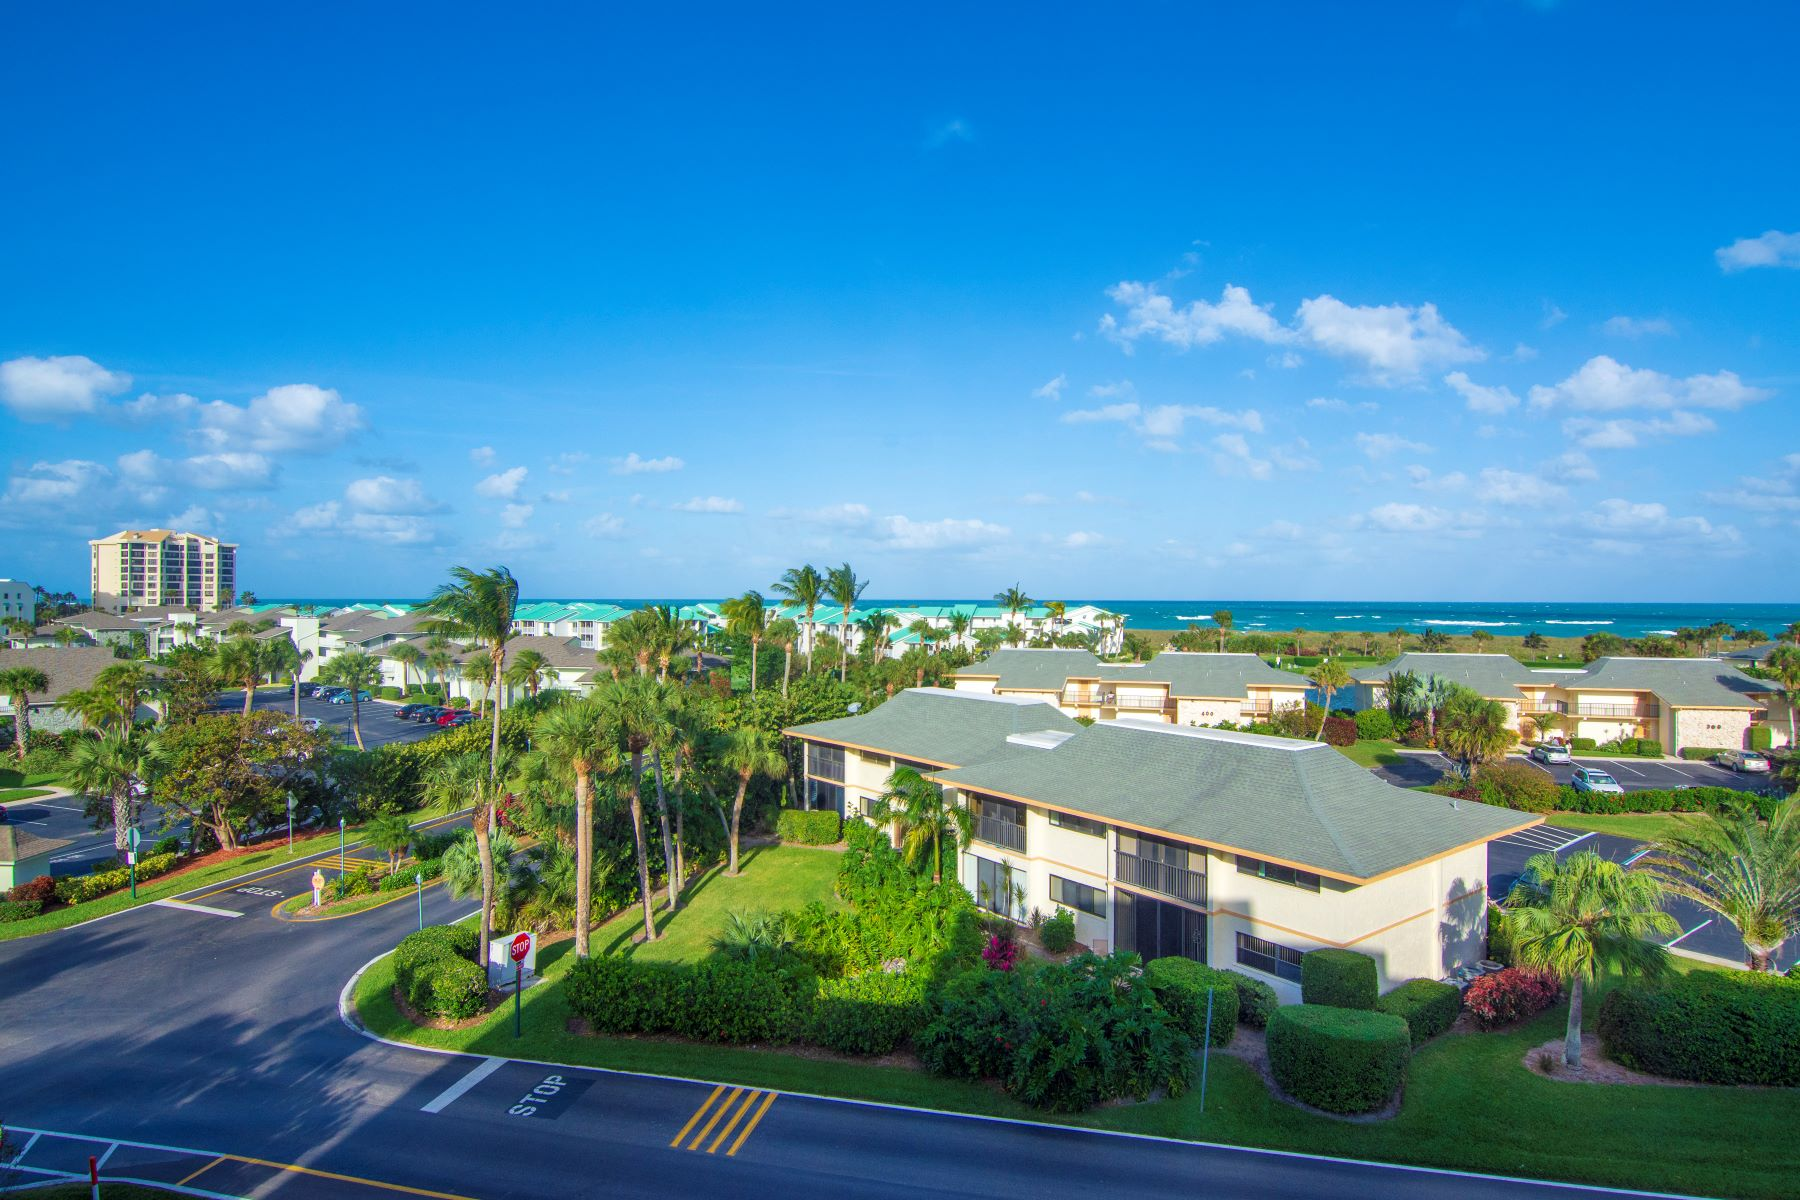 Property for Sale at 2400 S Ocean Drive 7253 Fort Pierce, Florida 34949 United States